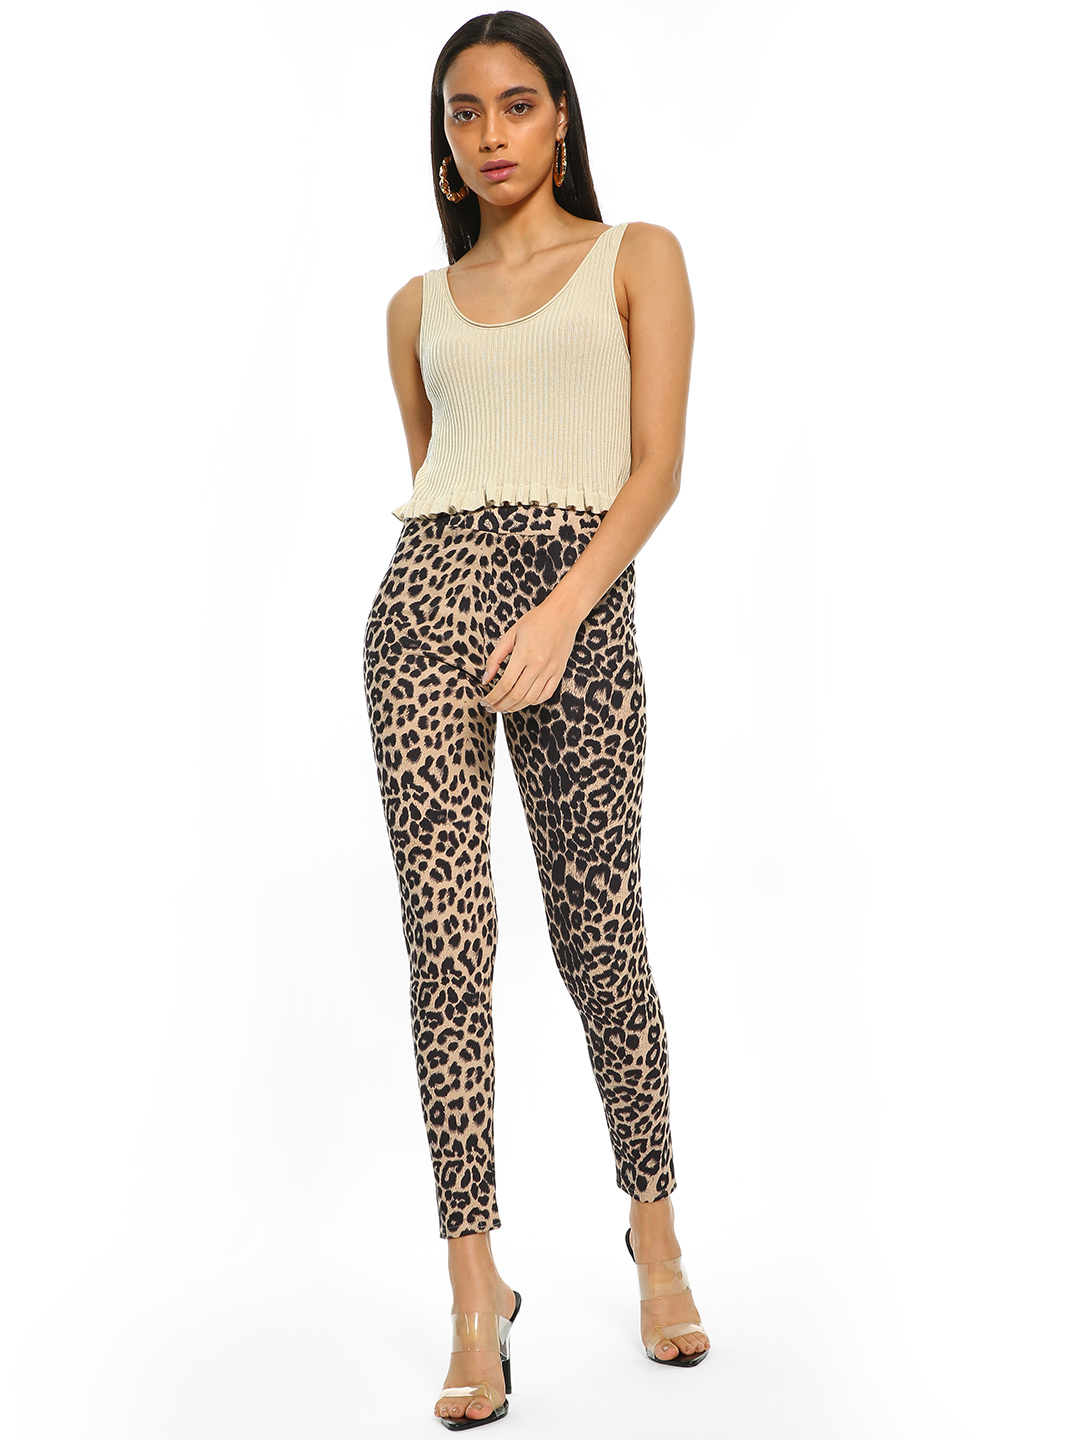 KOOVS Brown Leopard Print High Waist Leggings 1